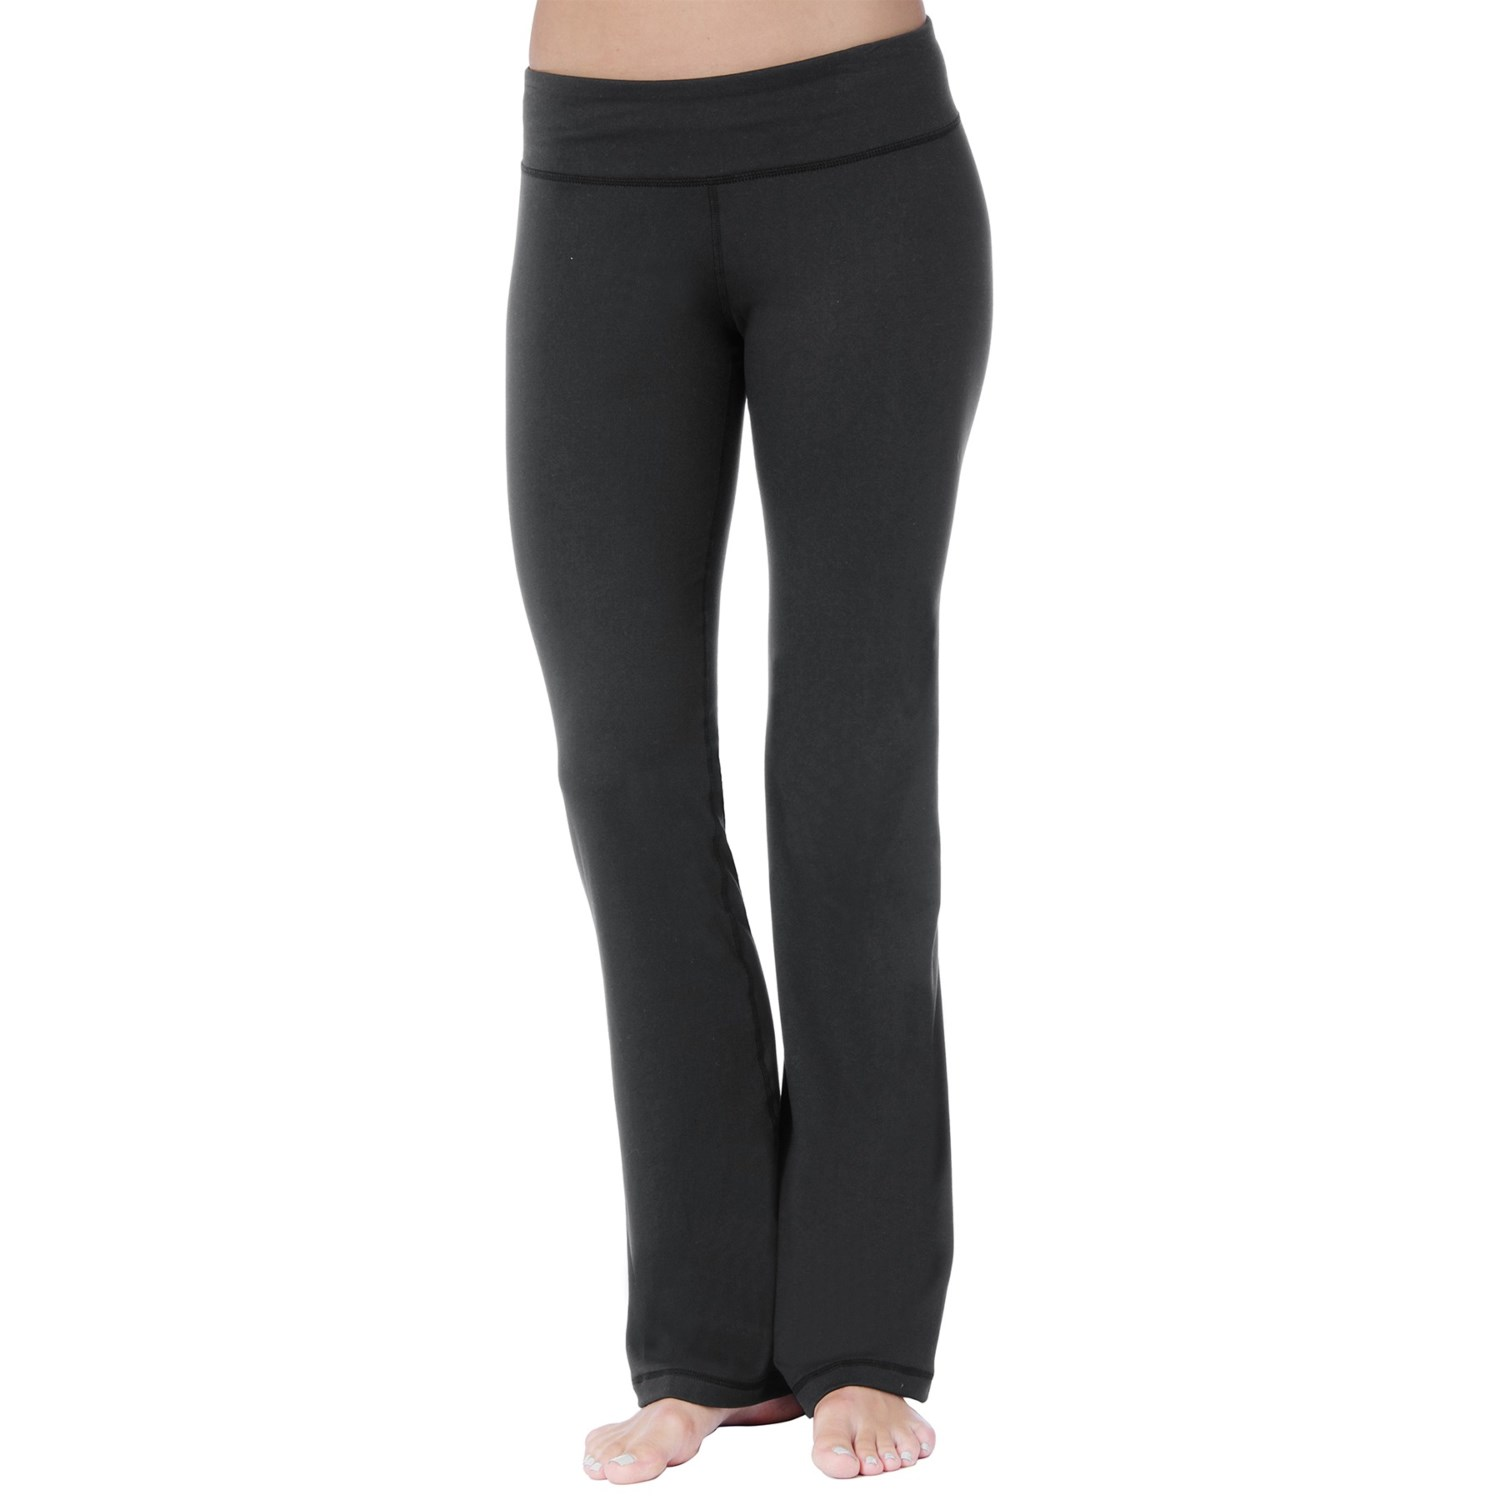 Cool Black Yoga Pants For Girls  Pi Pants